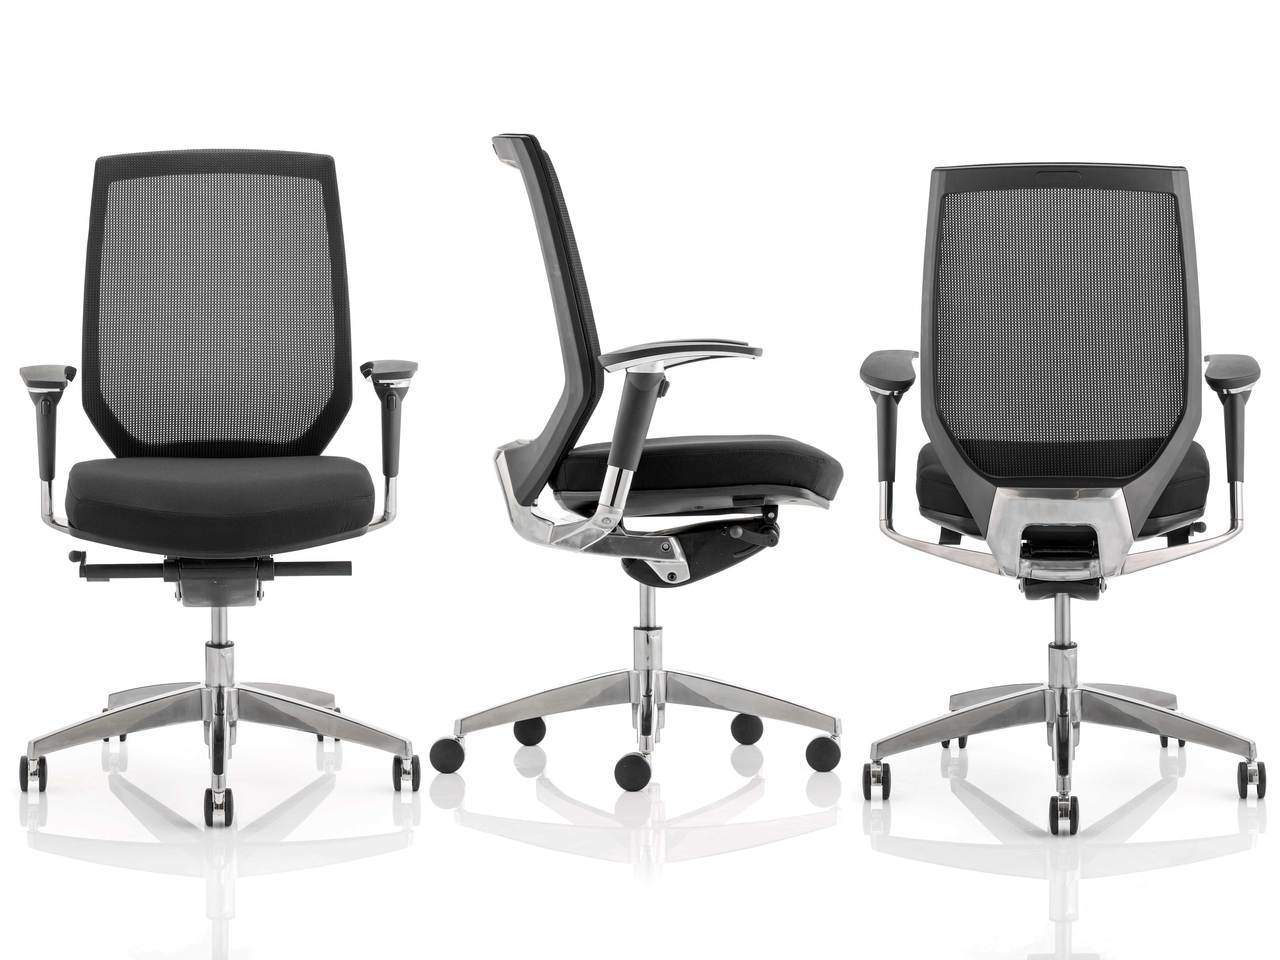 Midas Mesh Executive Office Chair